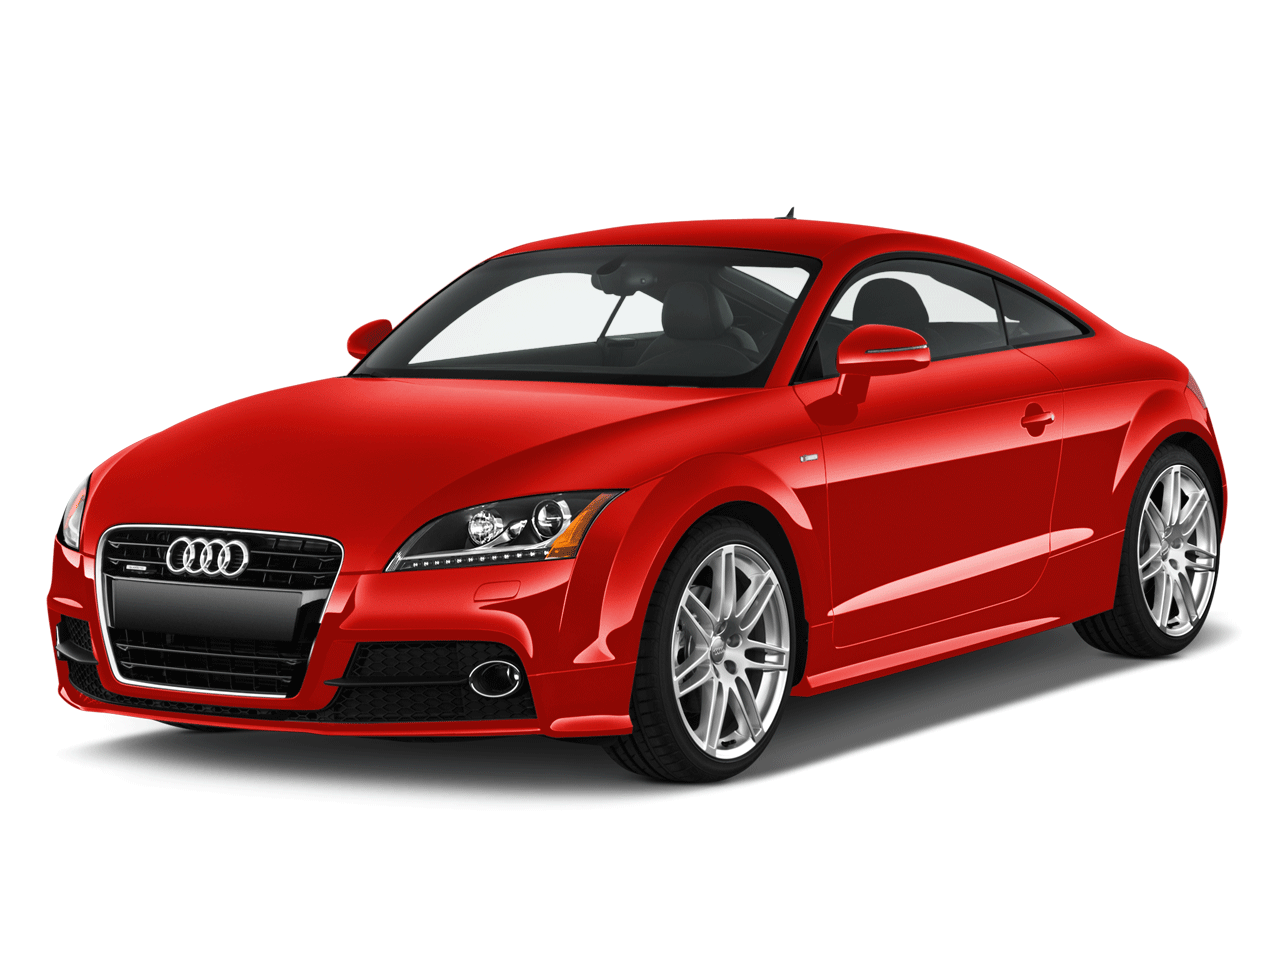 Tt clipart clip freeuse Audi TT PNG Clipart - Download free Car images in PNG clip freeuse